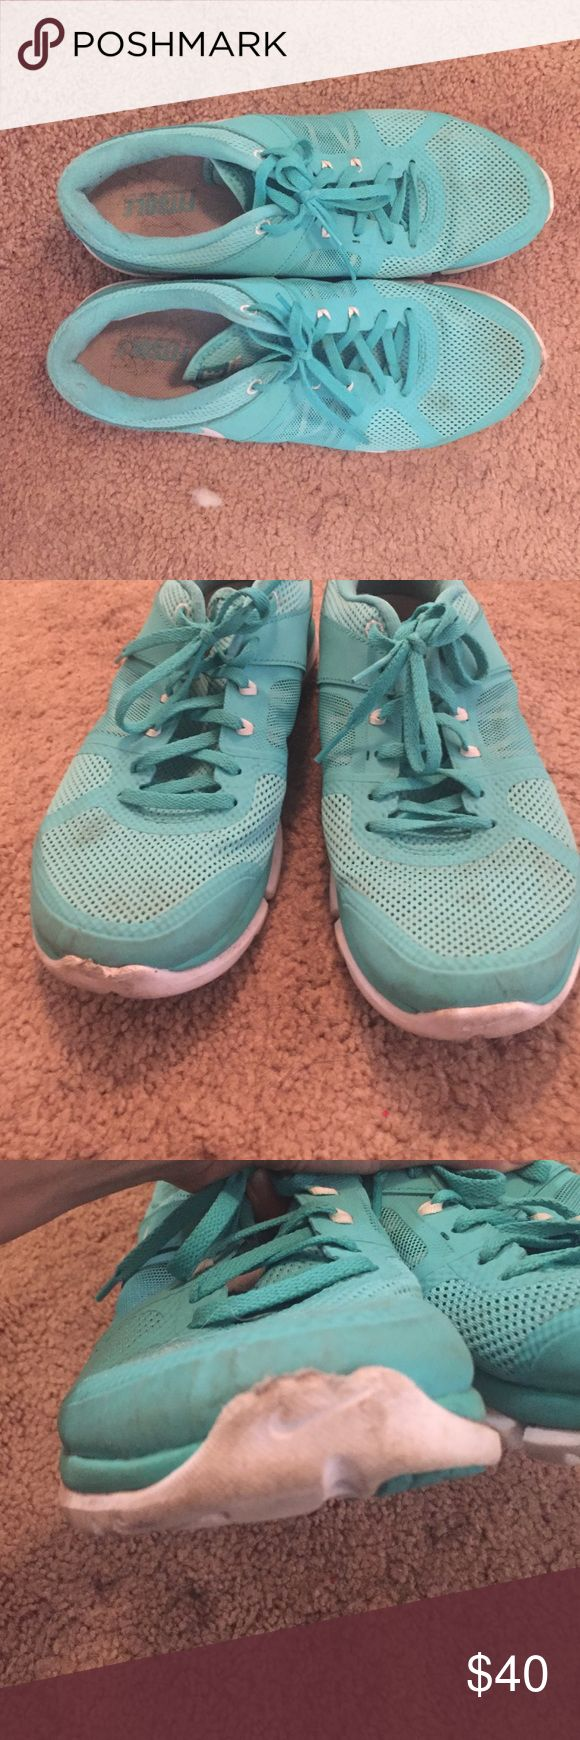 Nike tiffany blue tennis shoes running gym size 9 Pre-loved Nike running pro sports shoes. Size 9. very comfortable. I have worn them running outside which is why they are a bit scuffed up but they are in otherwise good condition and I love the turquoise blue color! Nike Shoes Athletic Shoes